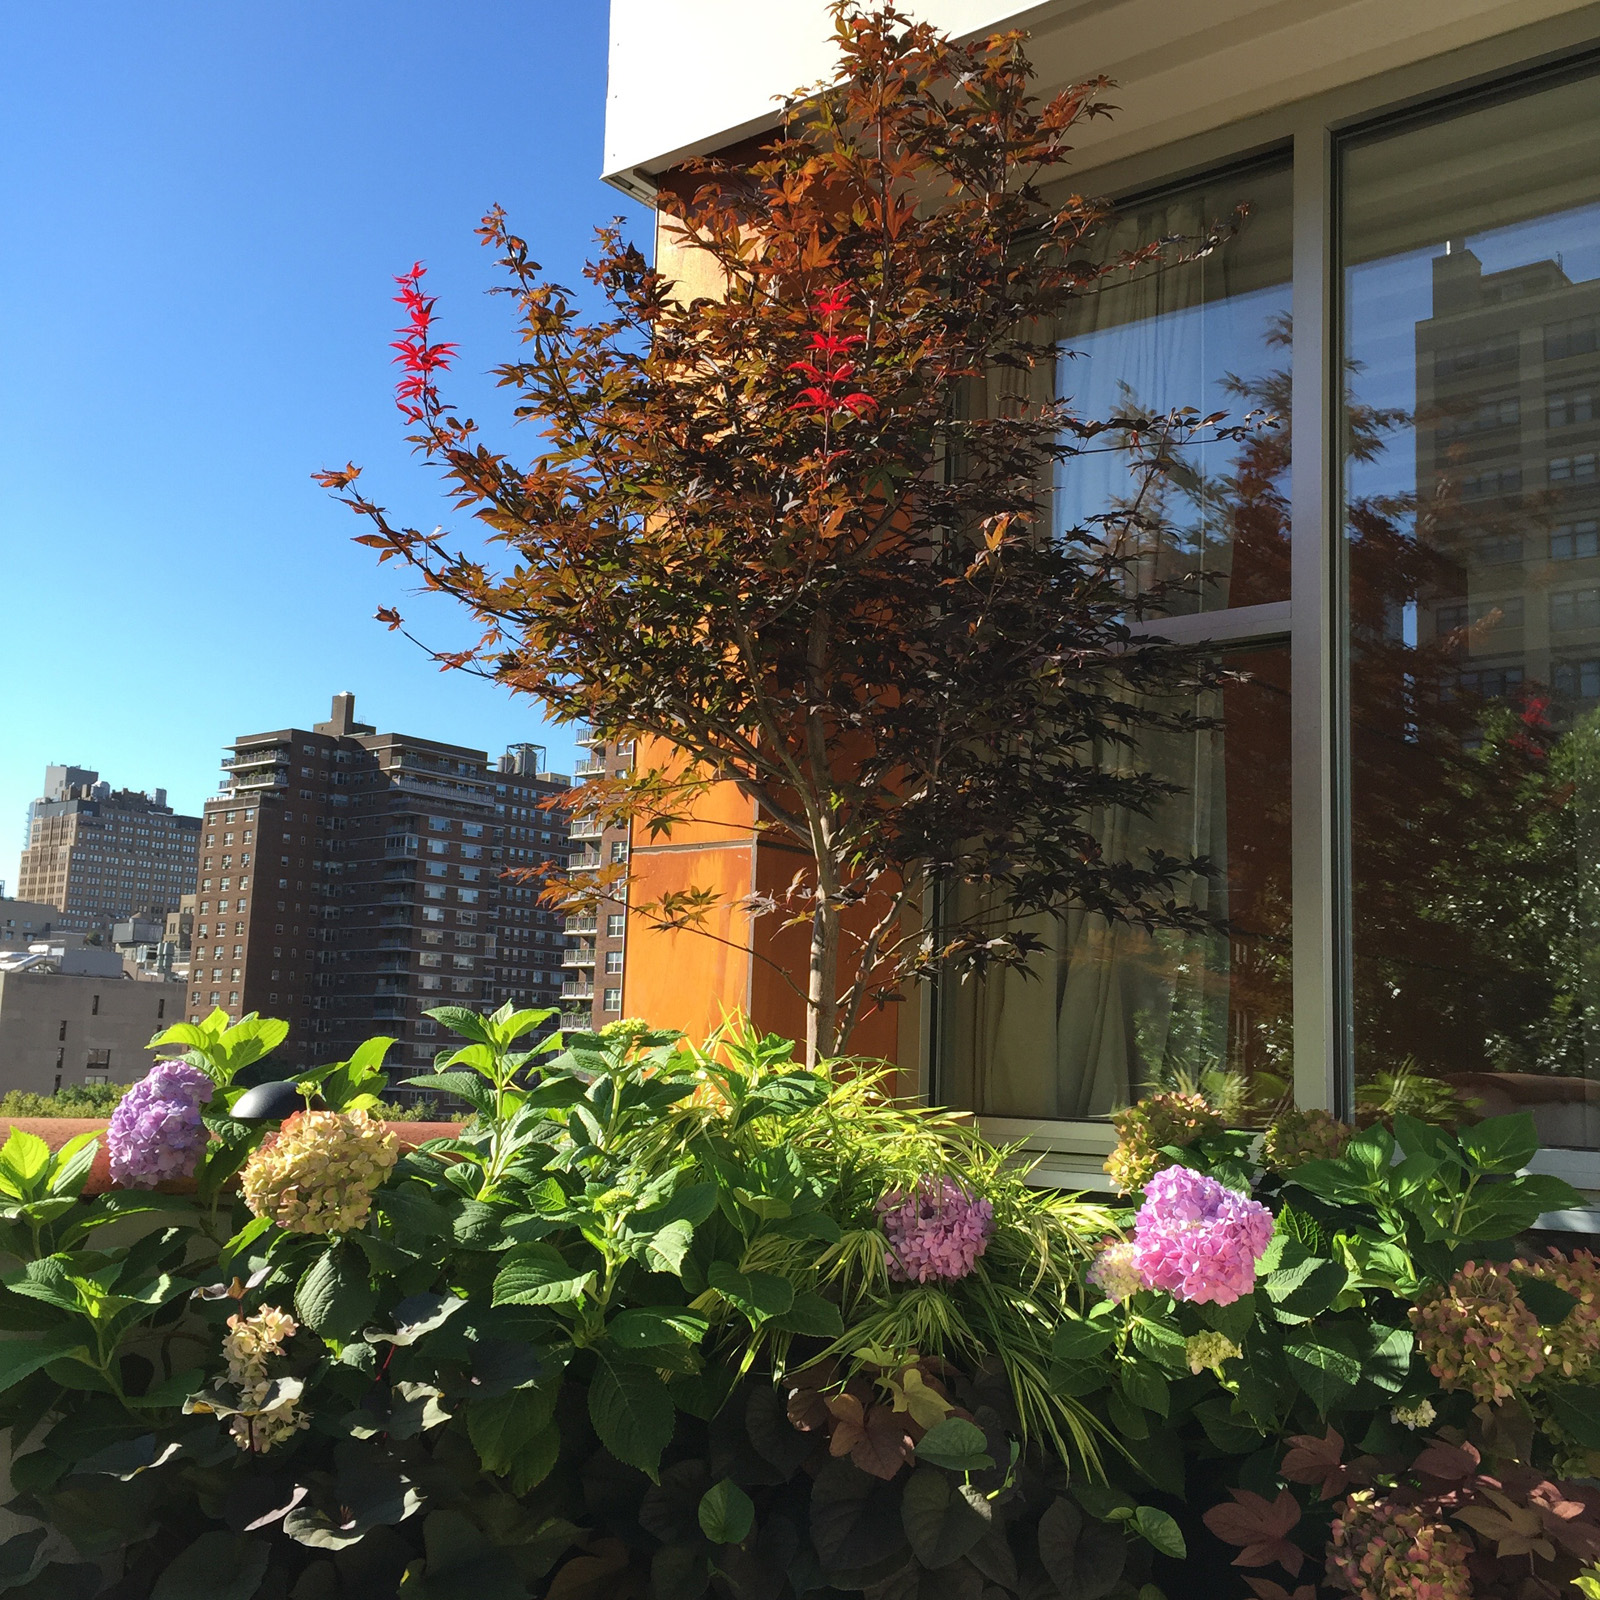 Japanese Maple Tree In Bloom On A Rooftop Garden Designed By All Decked Out  NYC